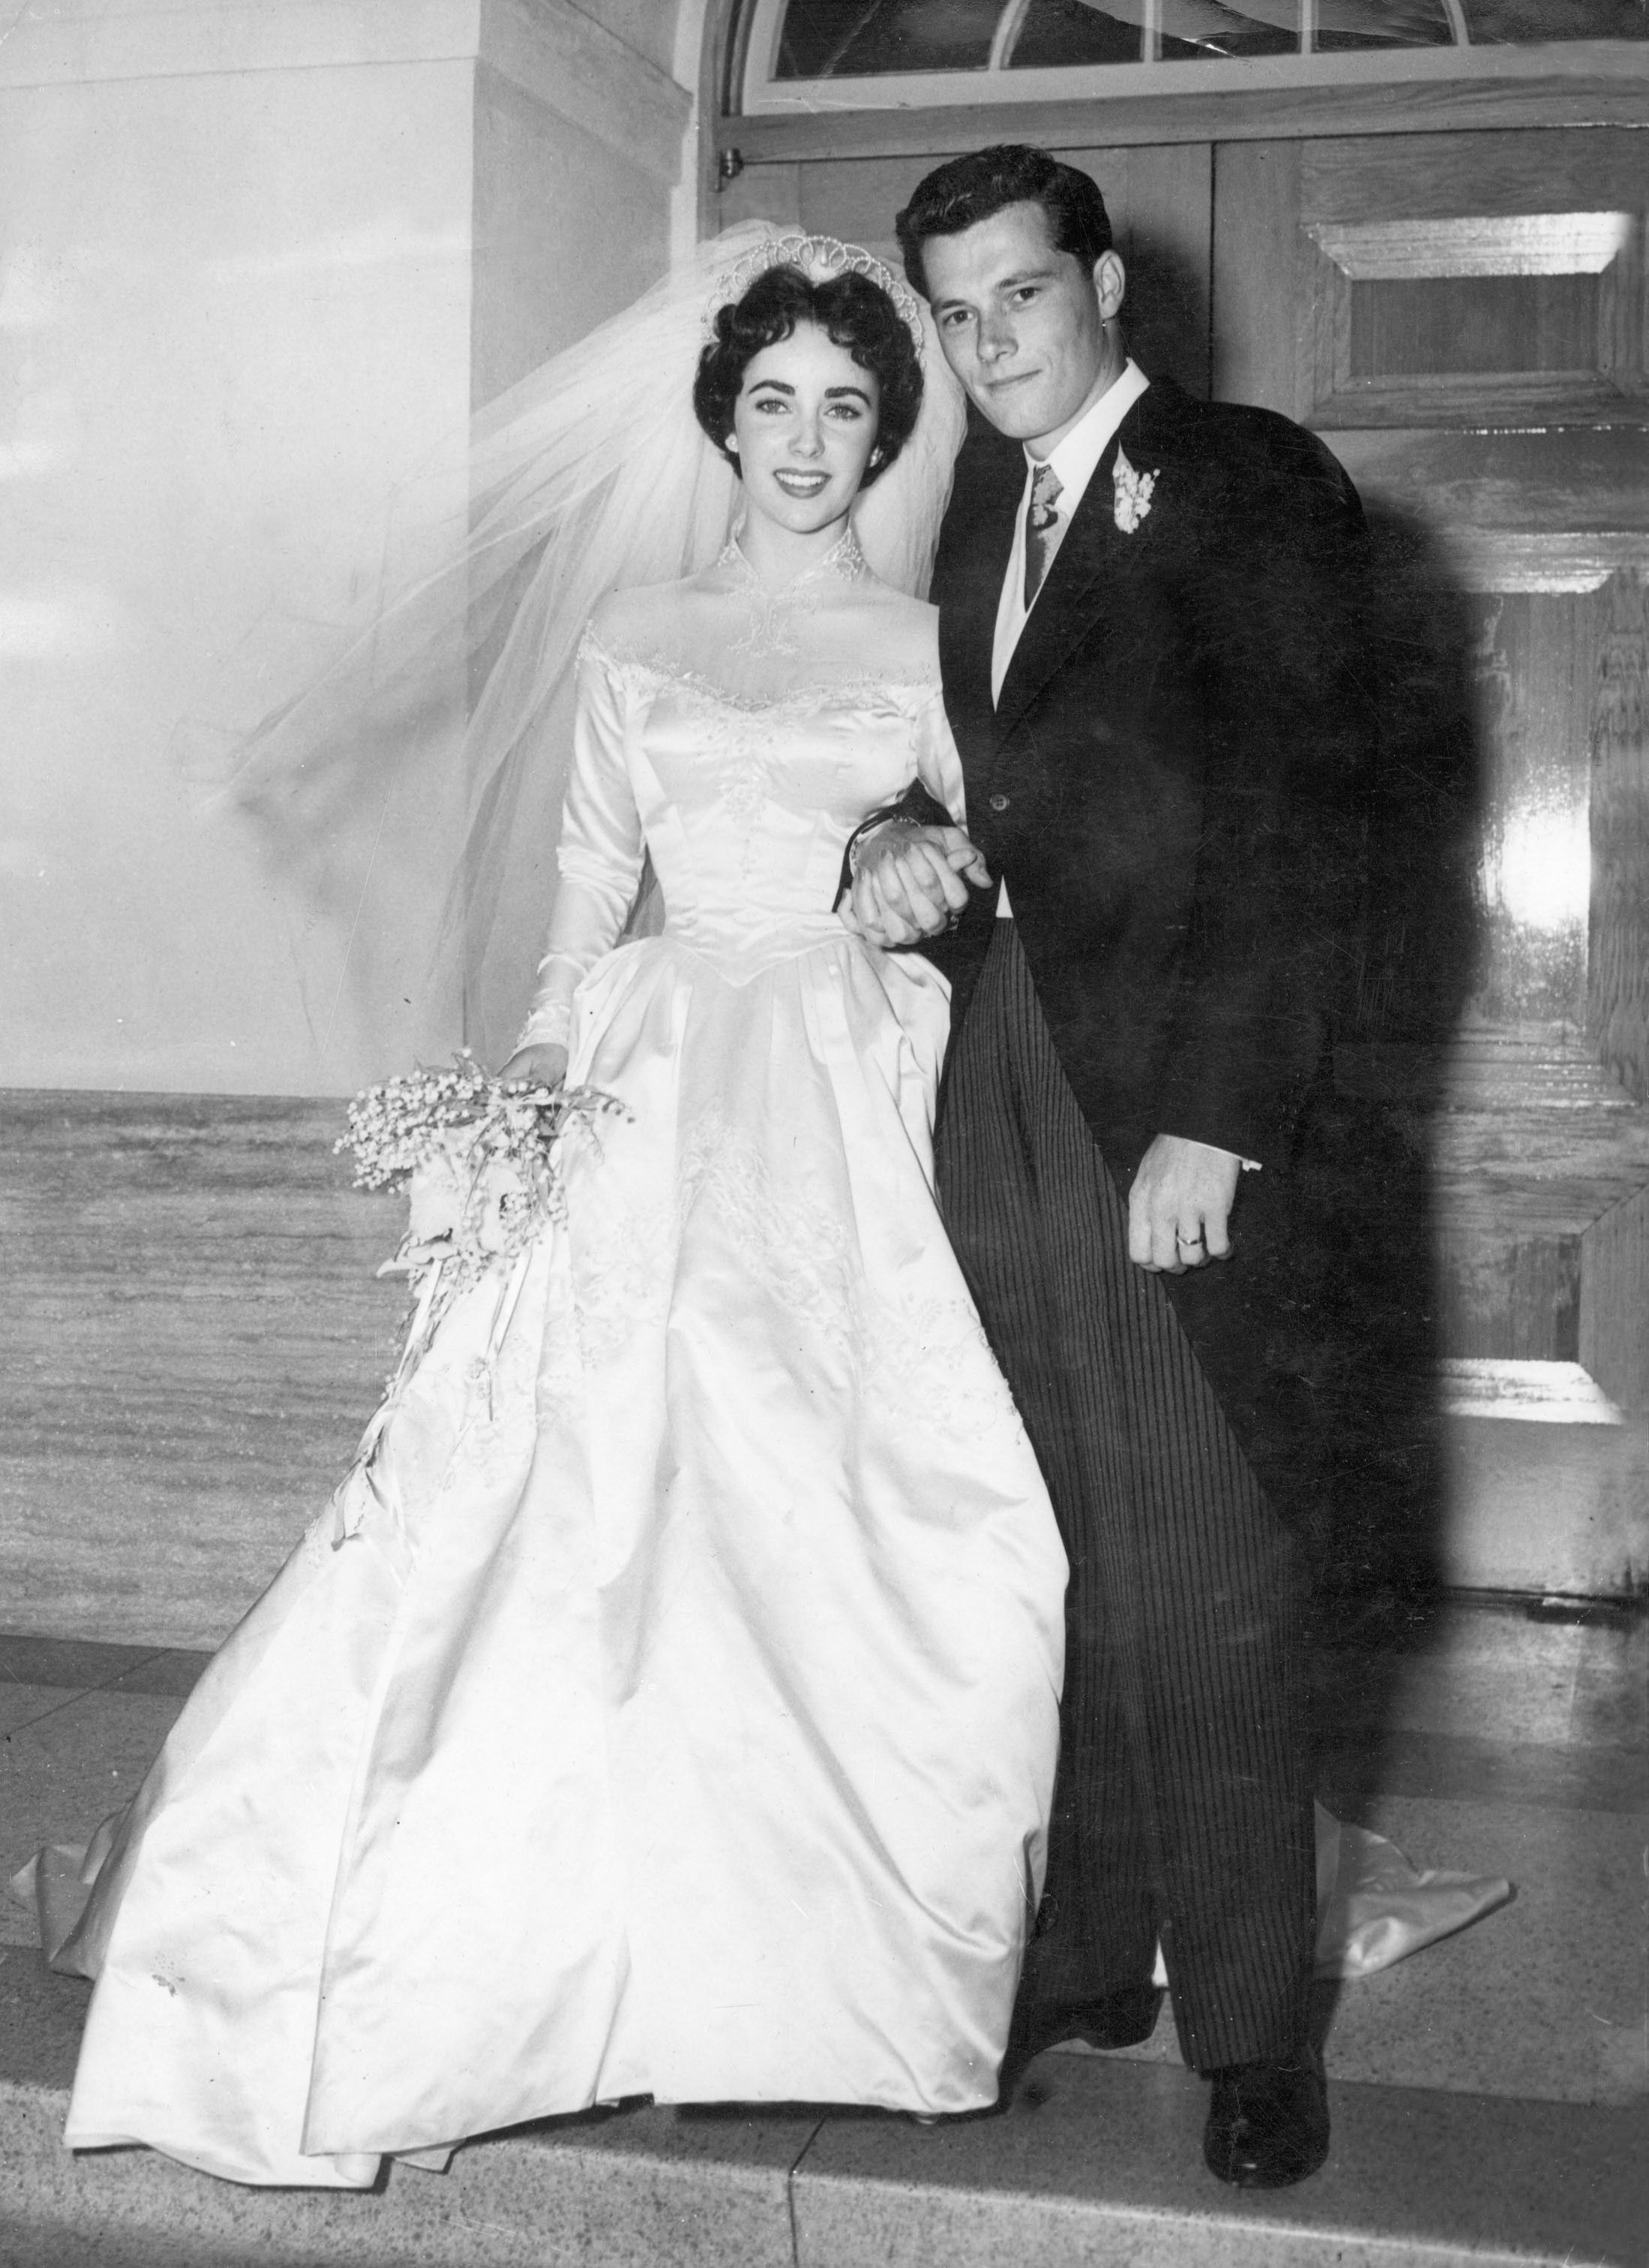 Elizabeth Taylor and Conrad Hilton, Jr. after their wedding at Church of The Good Shepherd on May 6, 1950